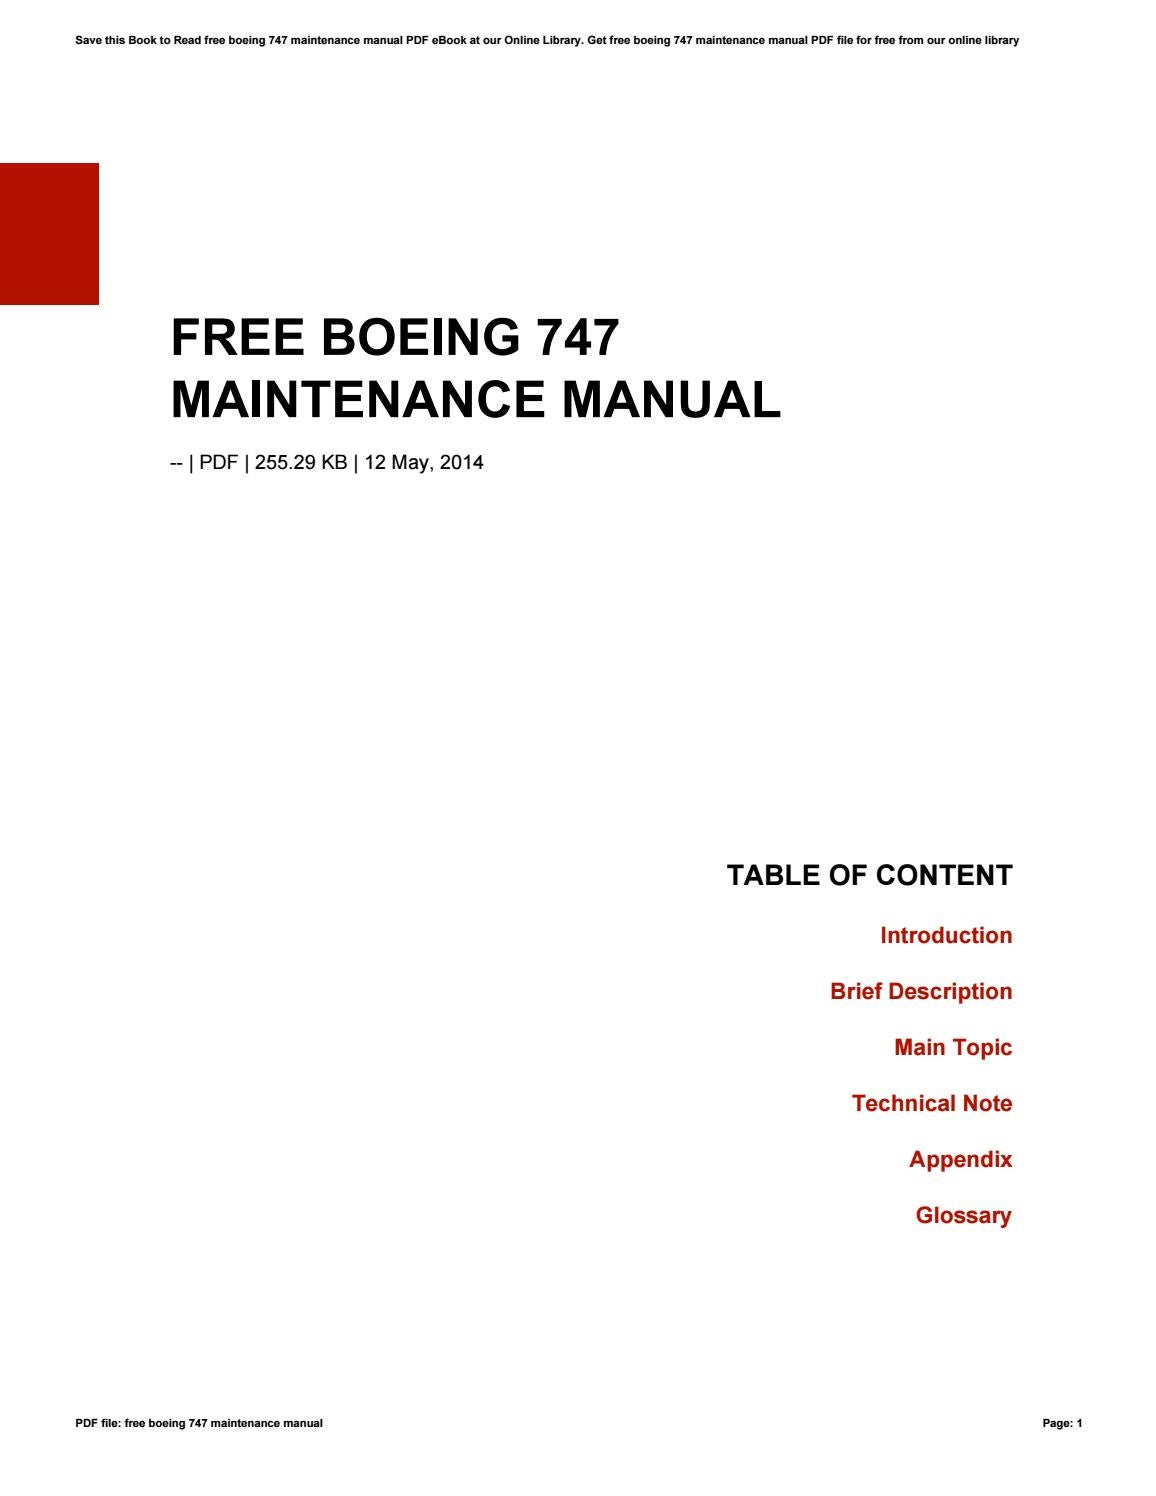 Boeing Electrical Standard Wiring Practices Manual Ebook Maytag Appliance Mah4000aww Information Series 45 Array Rh M